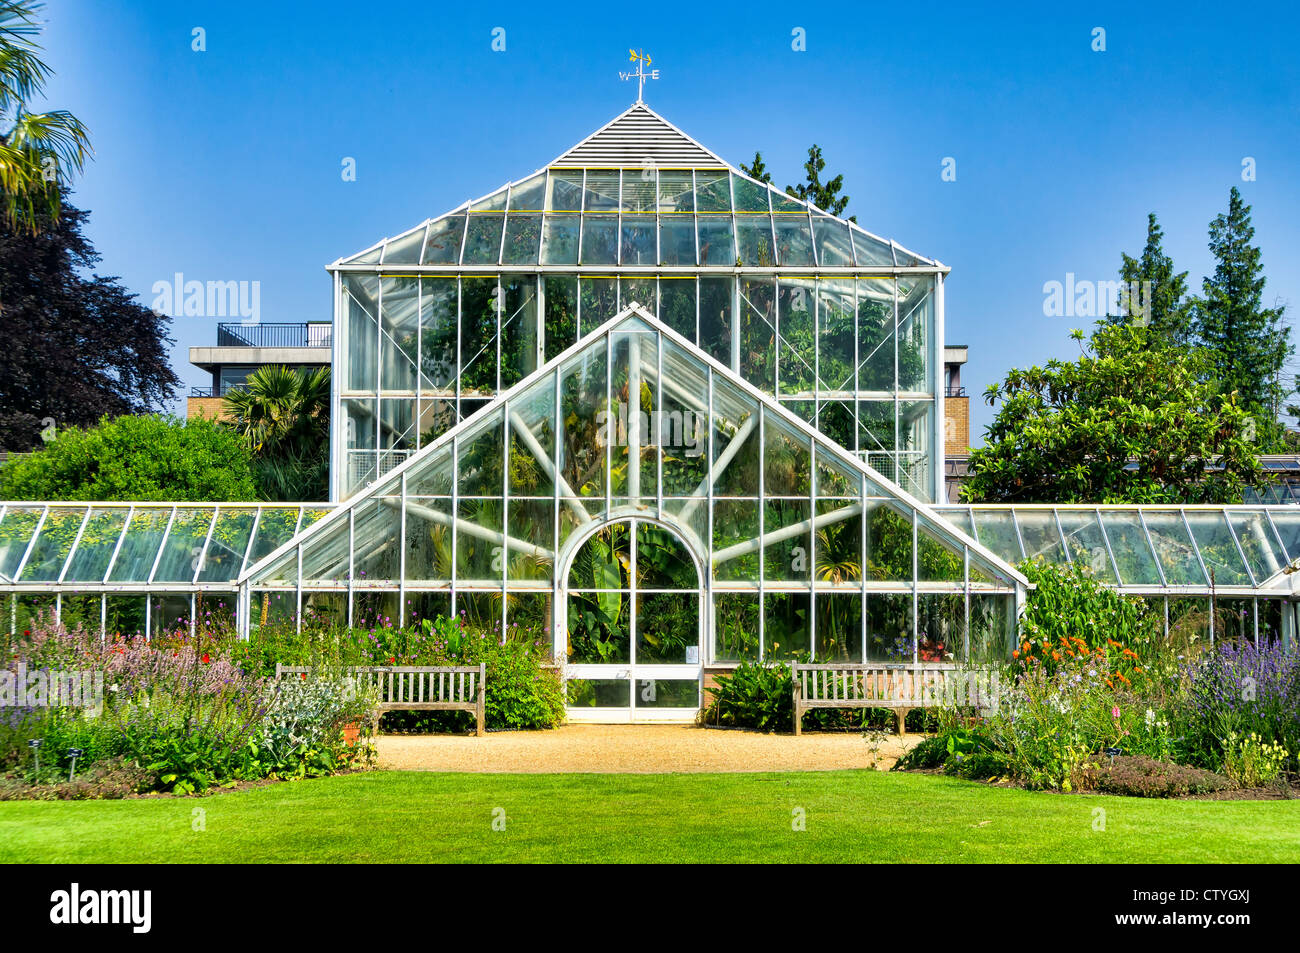 Greenhouse of the botanical garden of the University of Cambridge - Stock Image